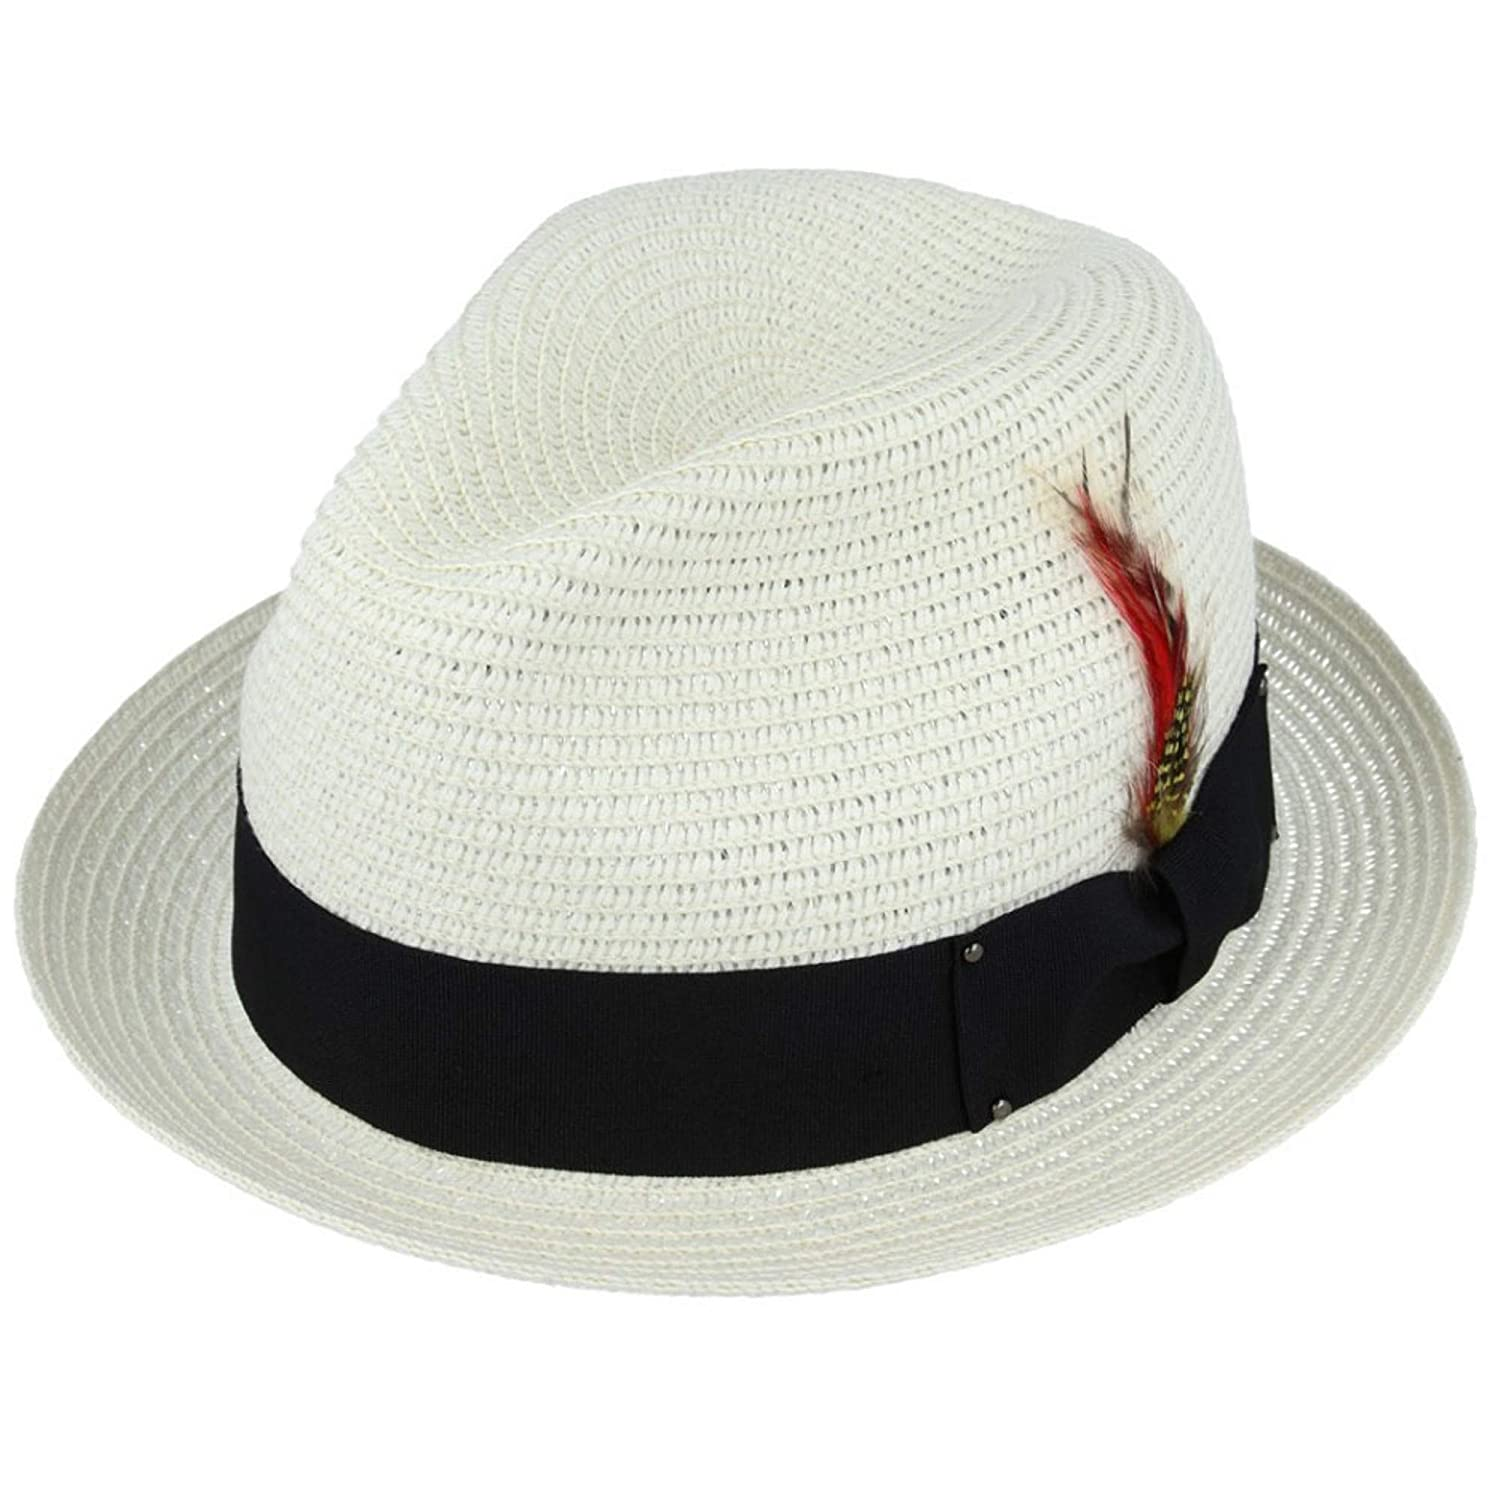 MAZ Unisex Paper Straw Cream Crushable Summer C-Crown Trilby Hat with Band and Adjustable Sweatband